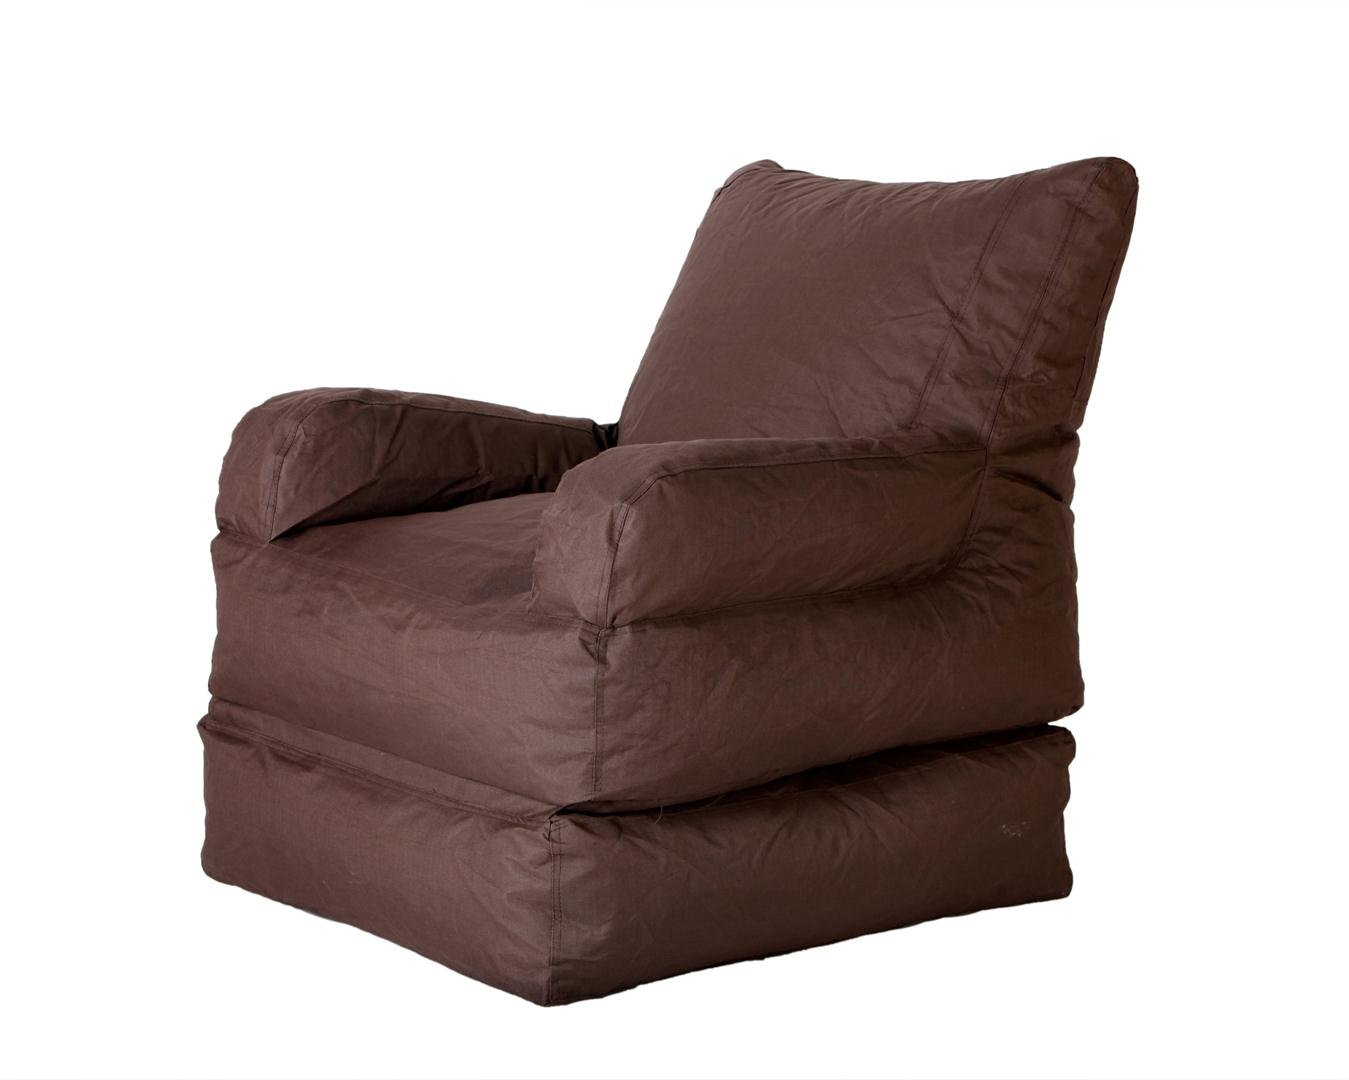 Comfy Bean Bags Foldable Lounger for Outdoors XXXL Bean Bag